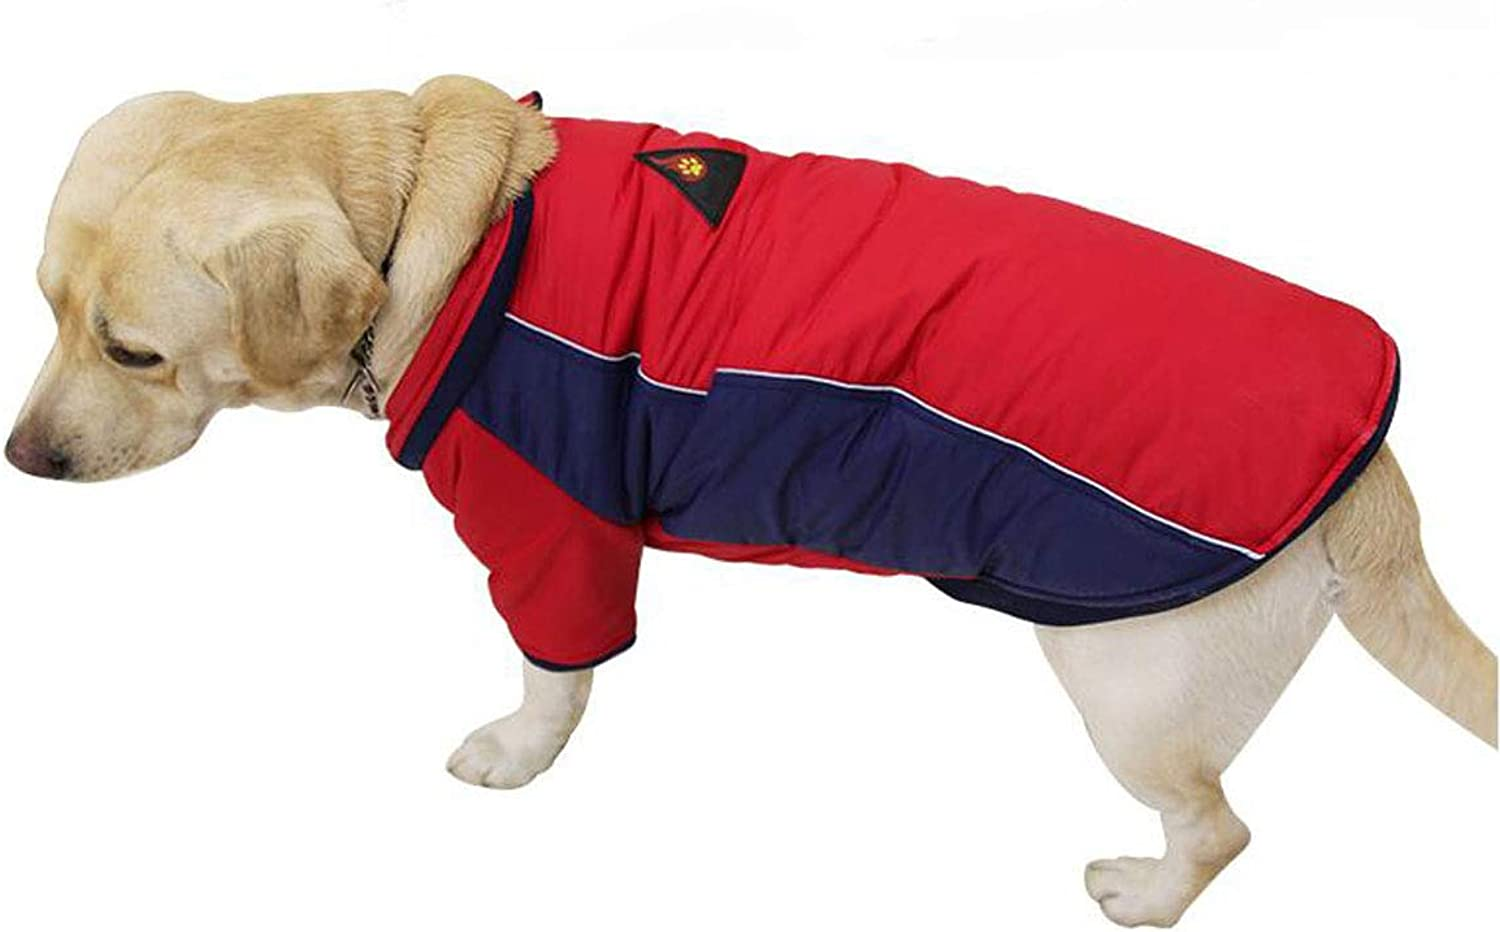 Pet Dog Clothes, Large and MediumSized, Pet TwoLegged Clothing (color   Red, Size   L)